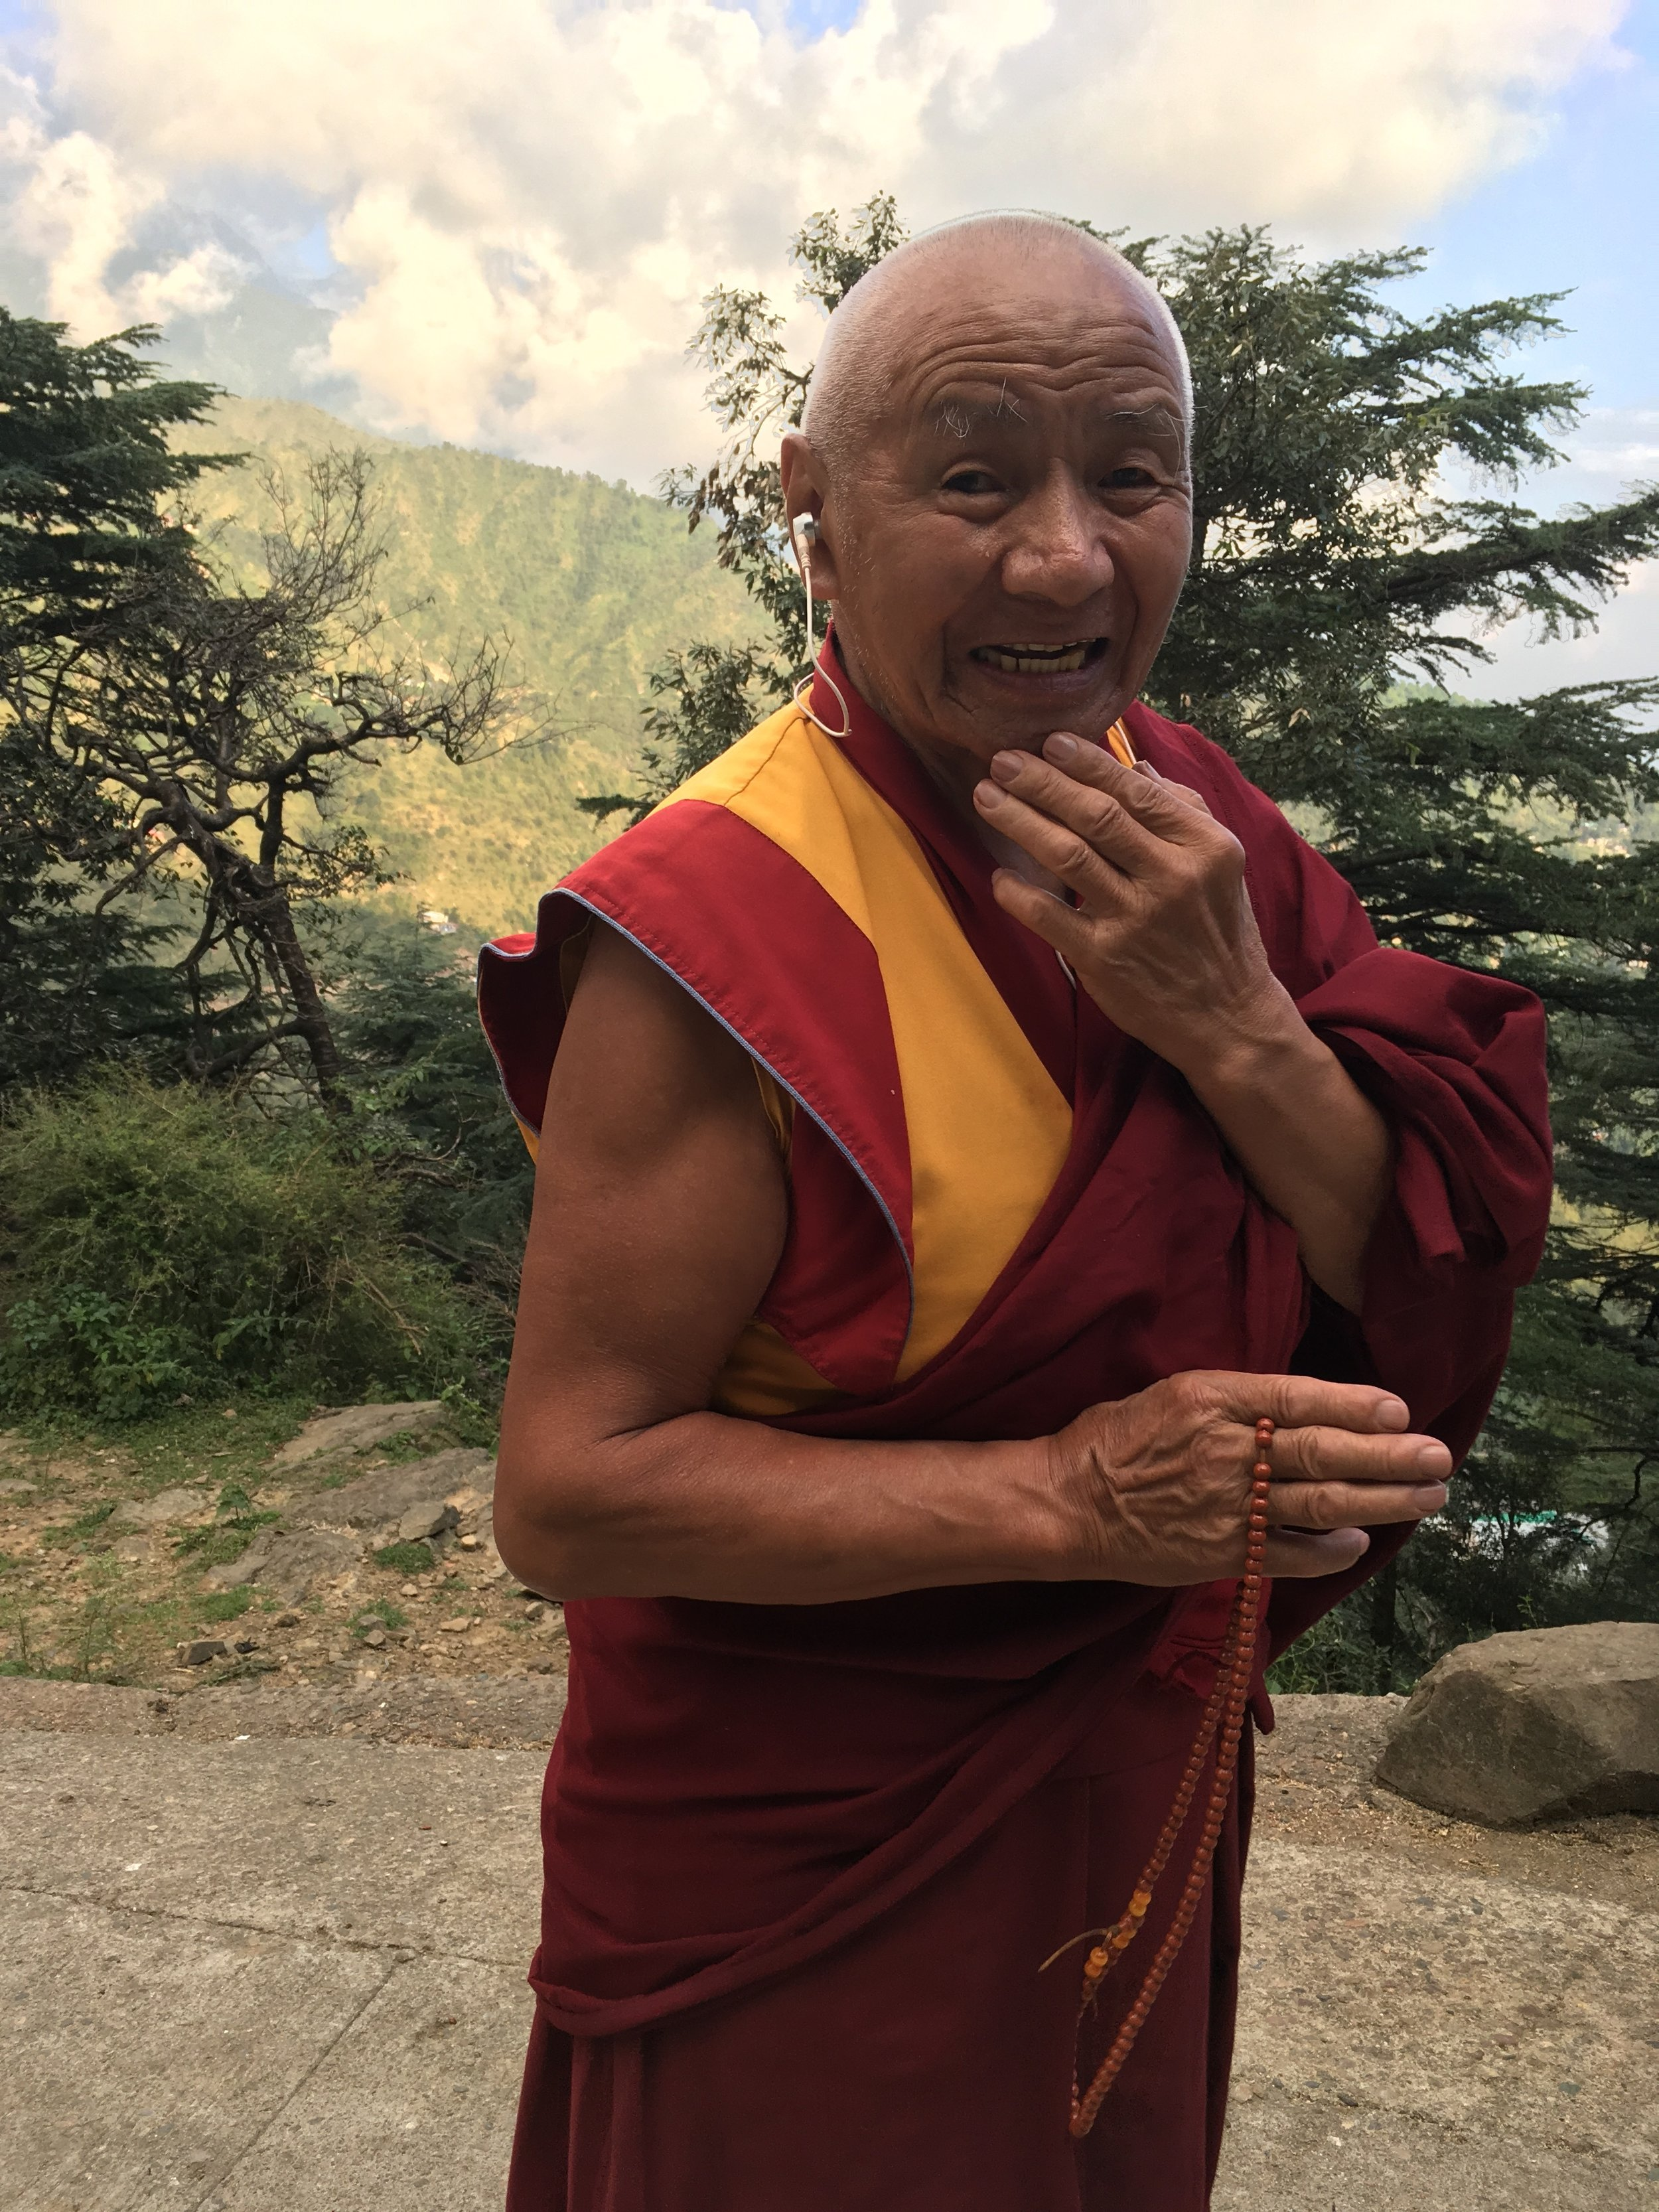 A monk pauses for a picture while on his meditation walk through a forested area near the Dalai Lama's temple in October 2018